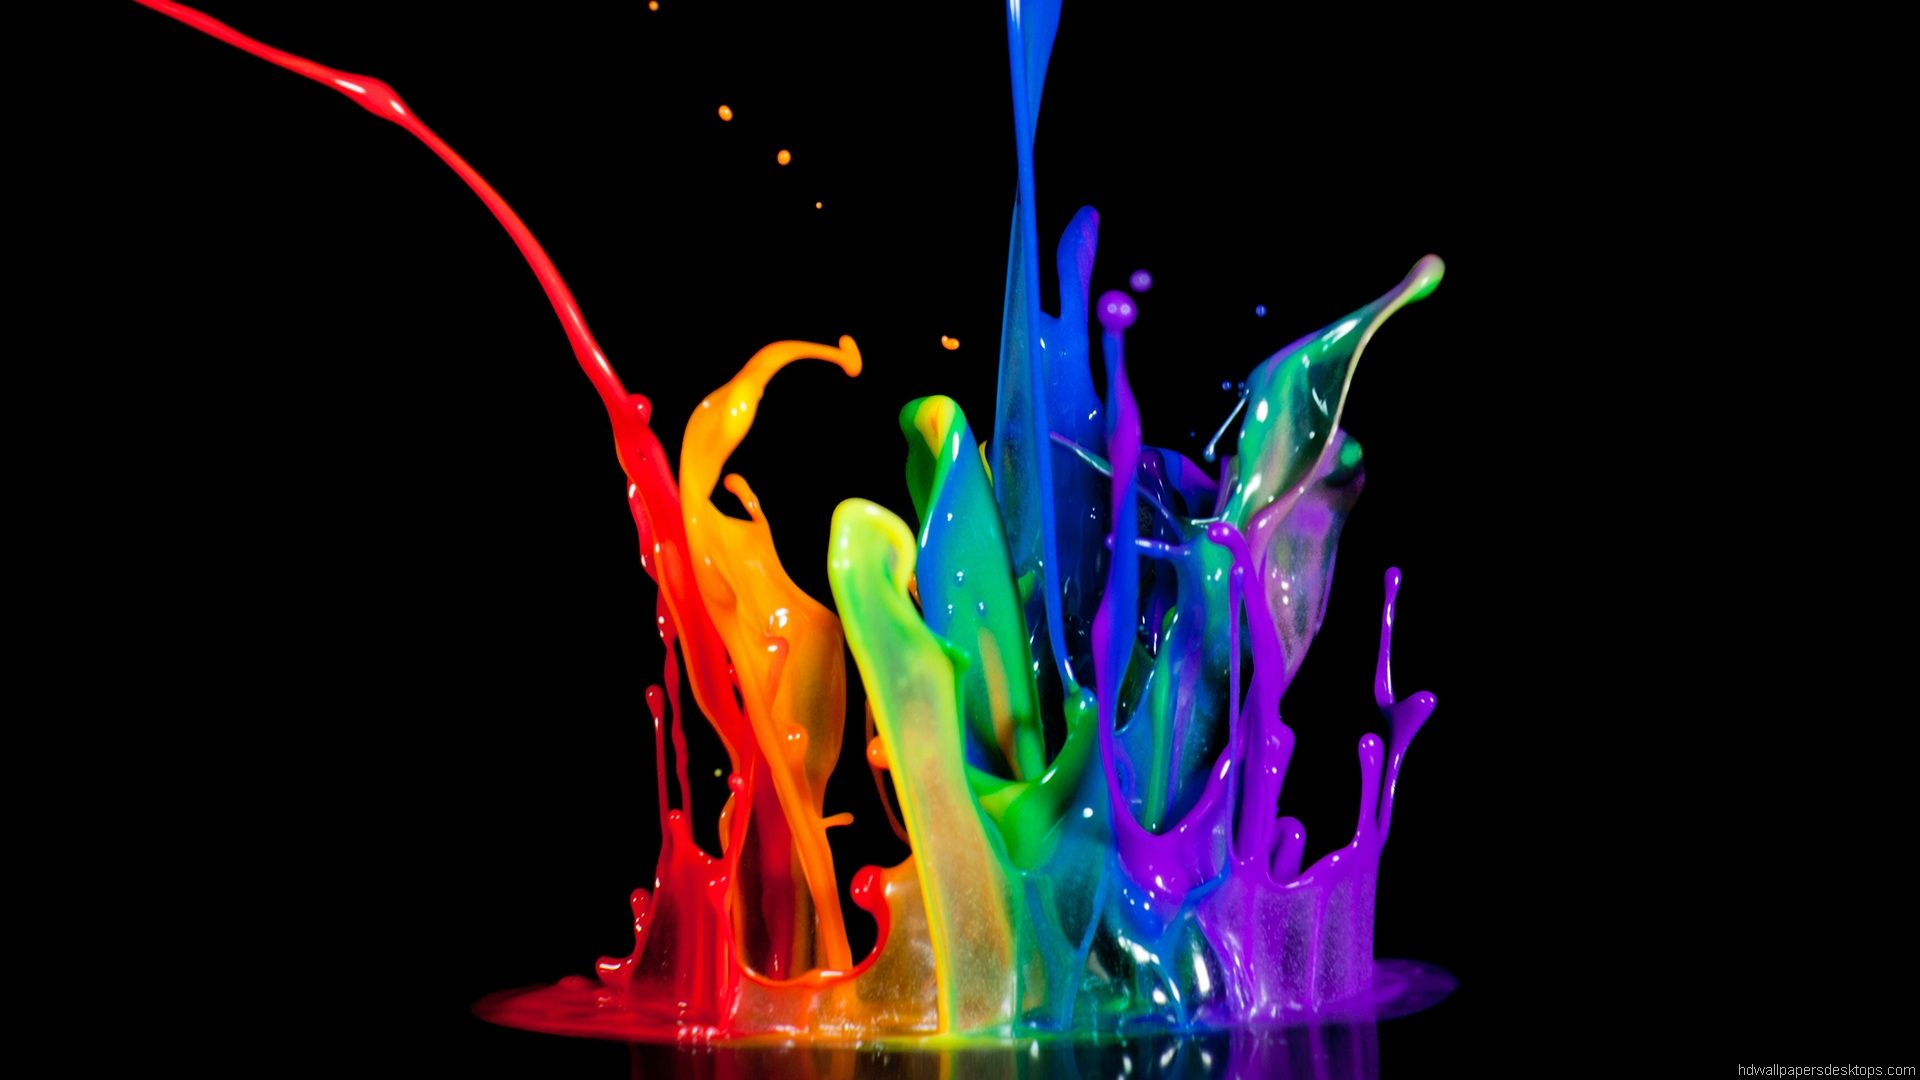 Free Download Colors Of The Rainbow Color Hd Wallpapers Hq Wallpapers 1920x1080 For Your Desktop Mobile Tablet Explore 76 All Wallpaper Gallery 1920x1080 Wallpaper Gallery Image Wallpaper For Walls